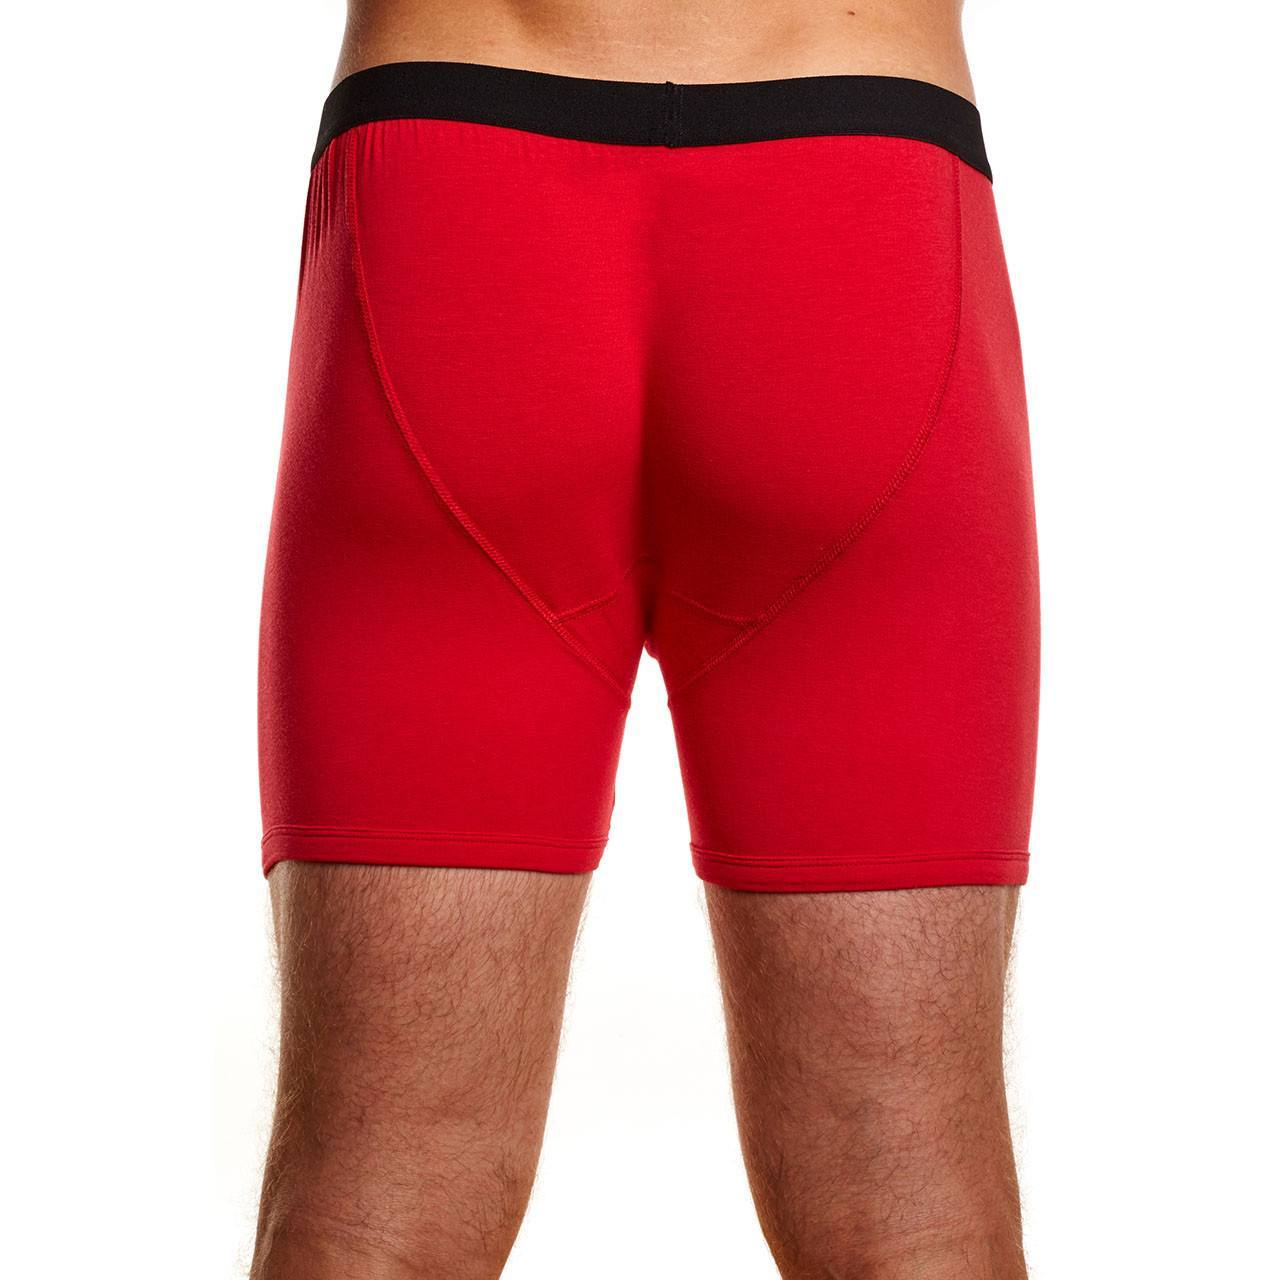 Underwear - Boxer Brief Underwear